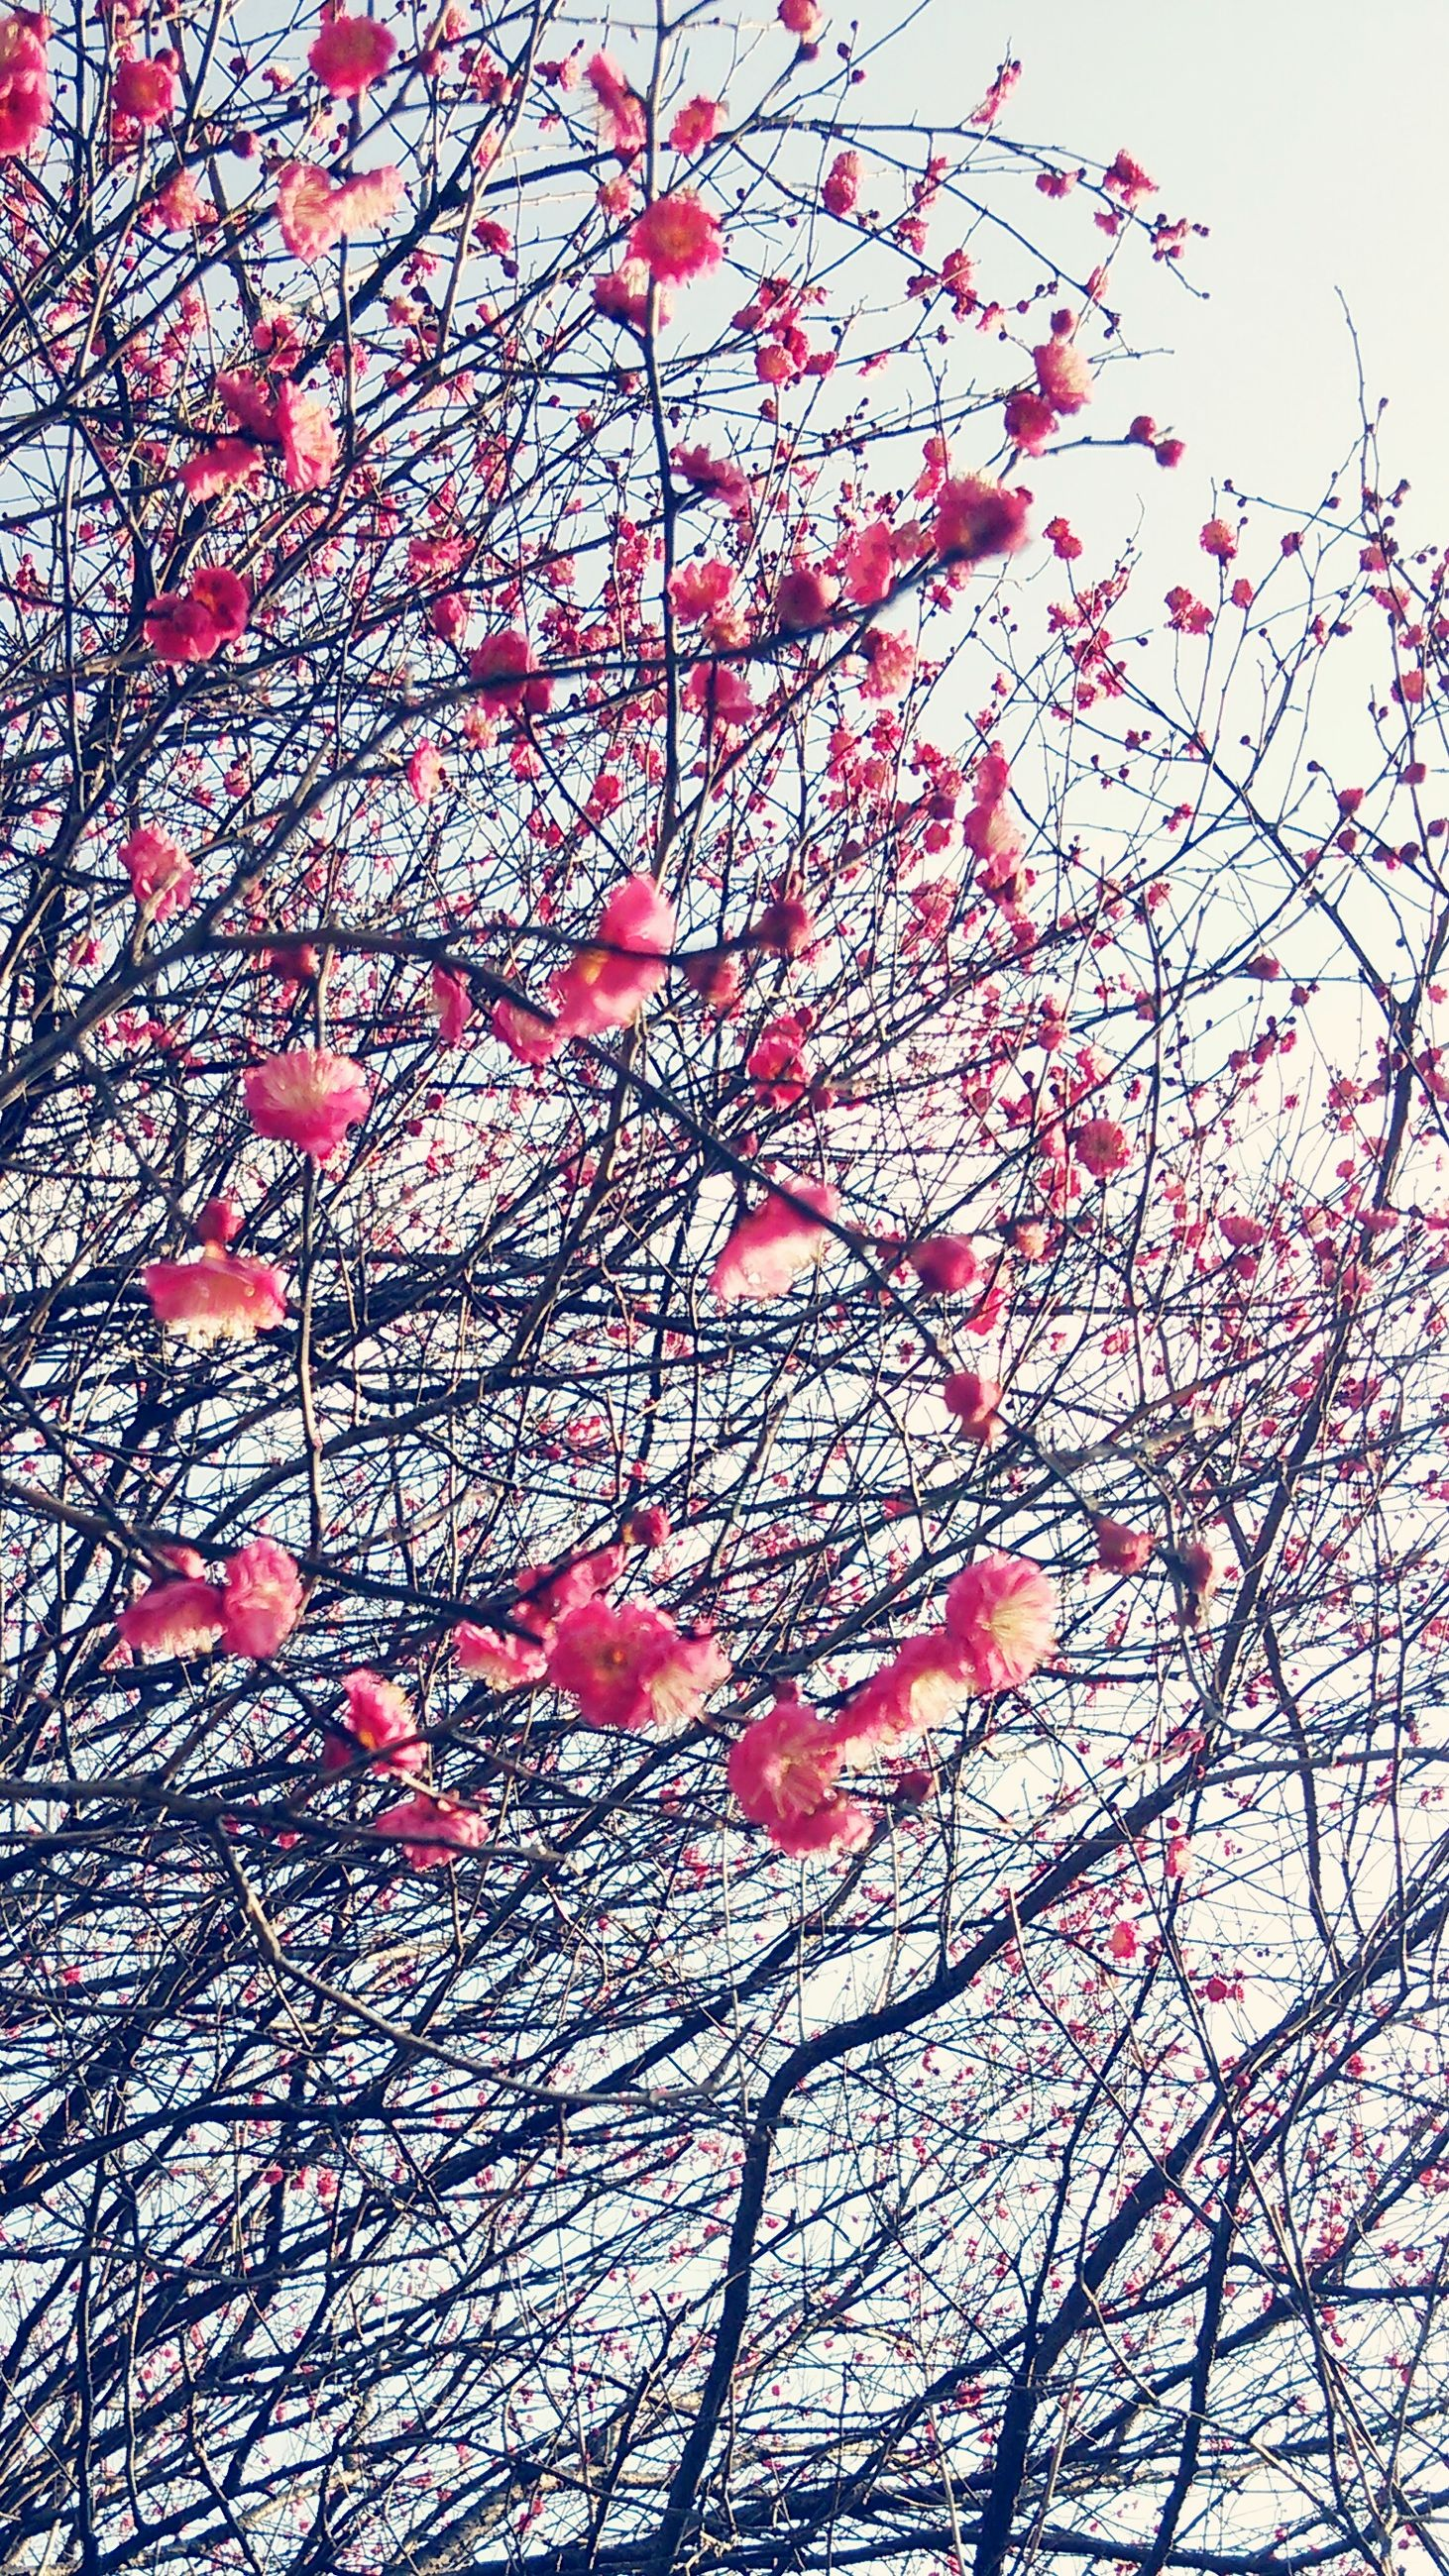 branch, low angle view, tree, clear sky, growth, nature, red, bare tree, sky, beauty in nature, flower, day, outdoors, no people, season, pink color, decoration, autumn, tranquility, change